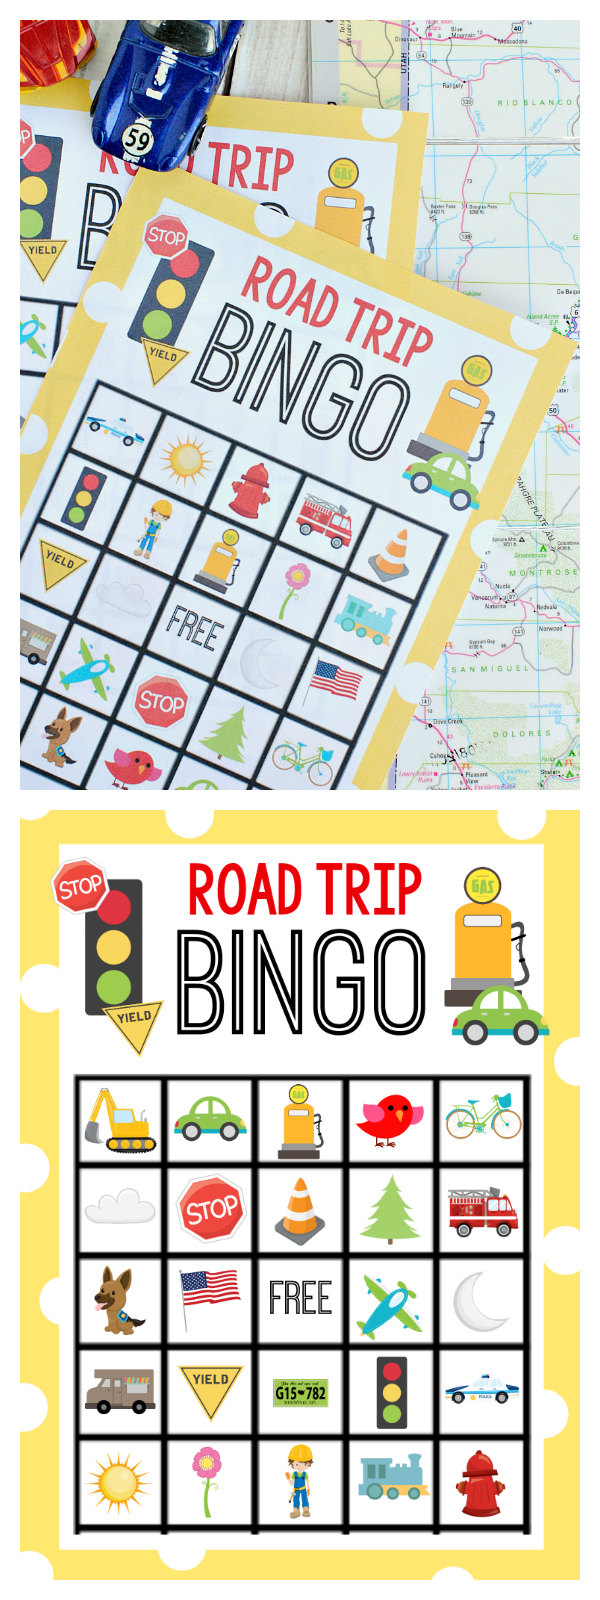 Road Trip Bingo Game-Great road trip ideas for kids. Play this fun Bingo game with the kids while you drive. Just print and play! #roadtrip #summer #kids #activities